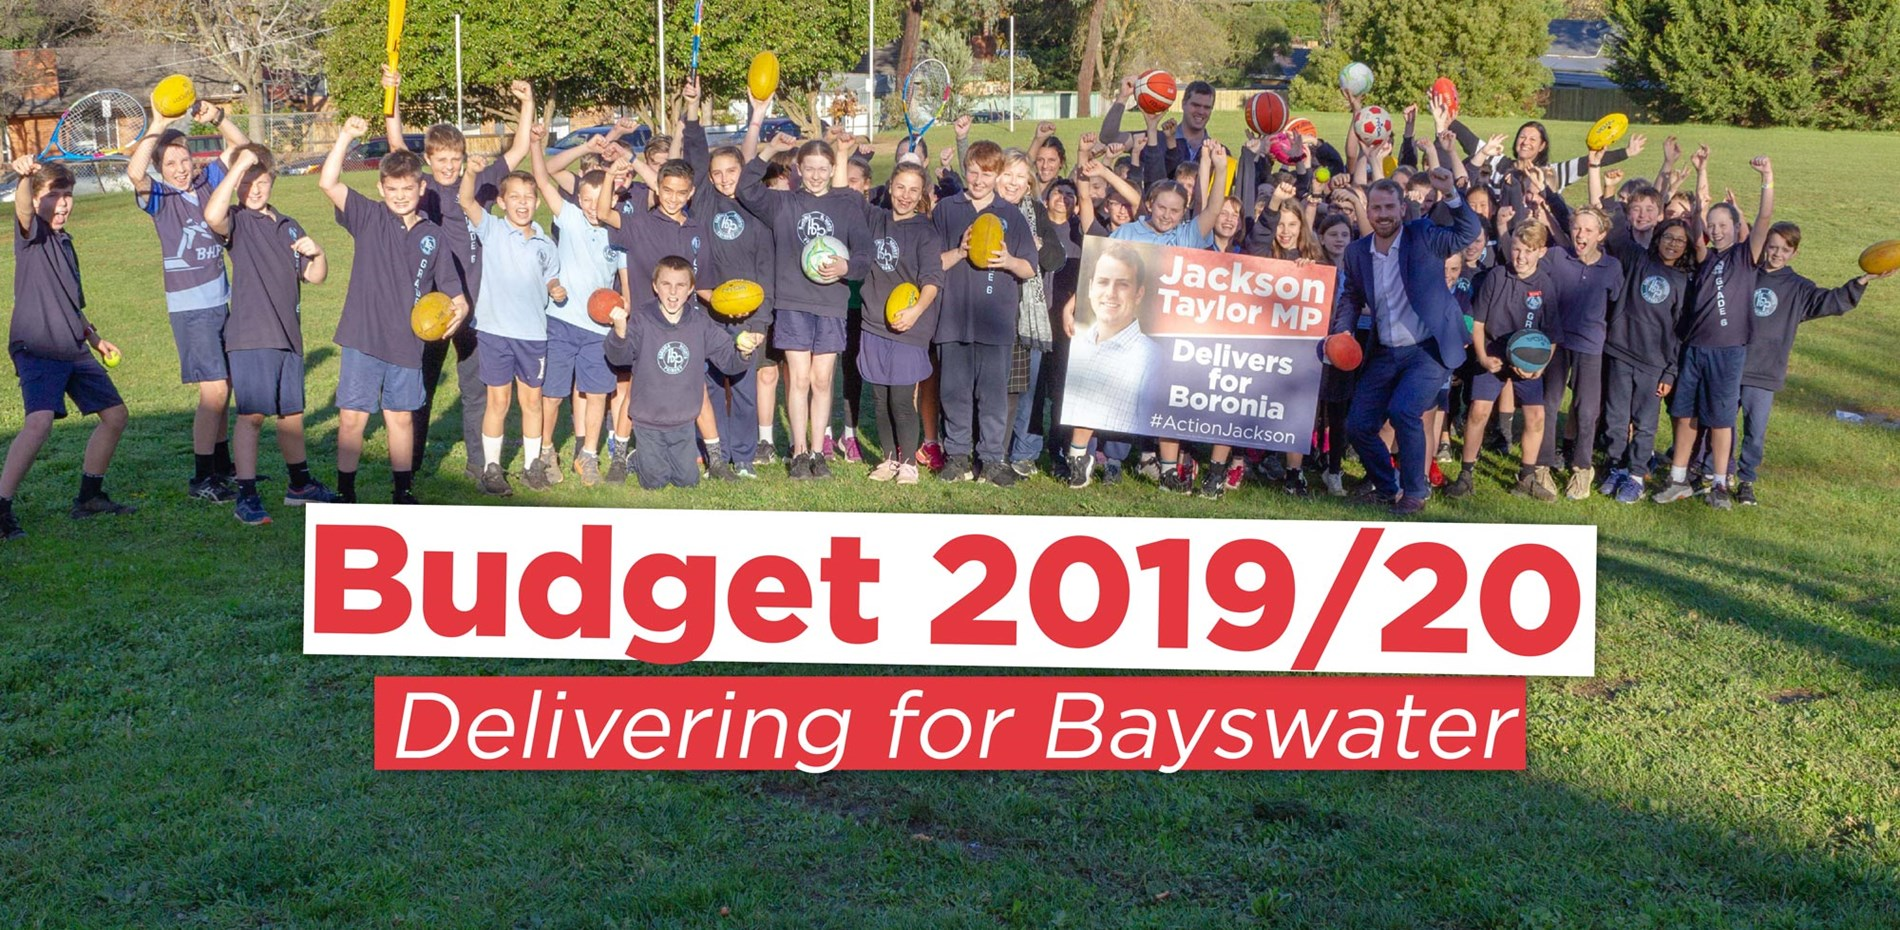 Labor Delivers for Bayswater  Main Image